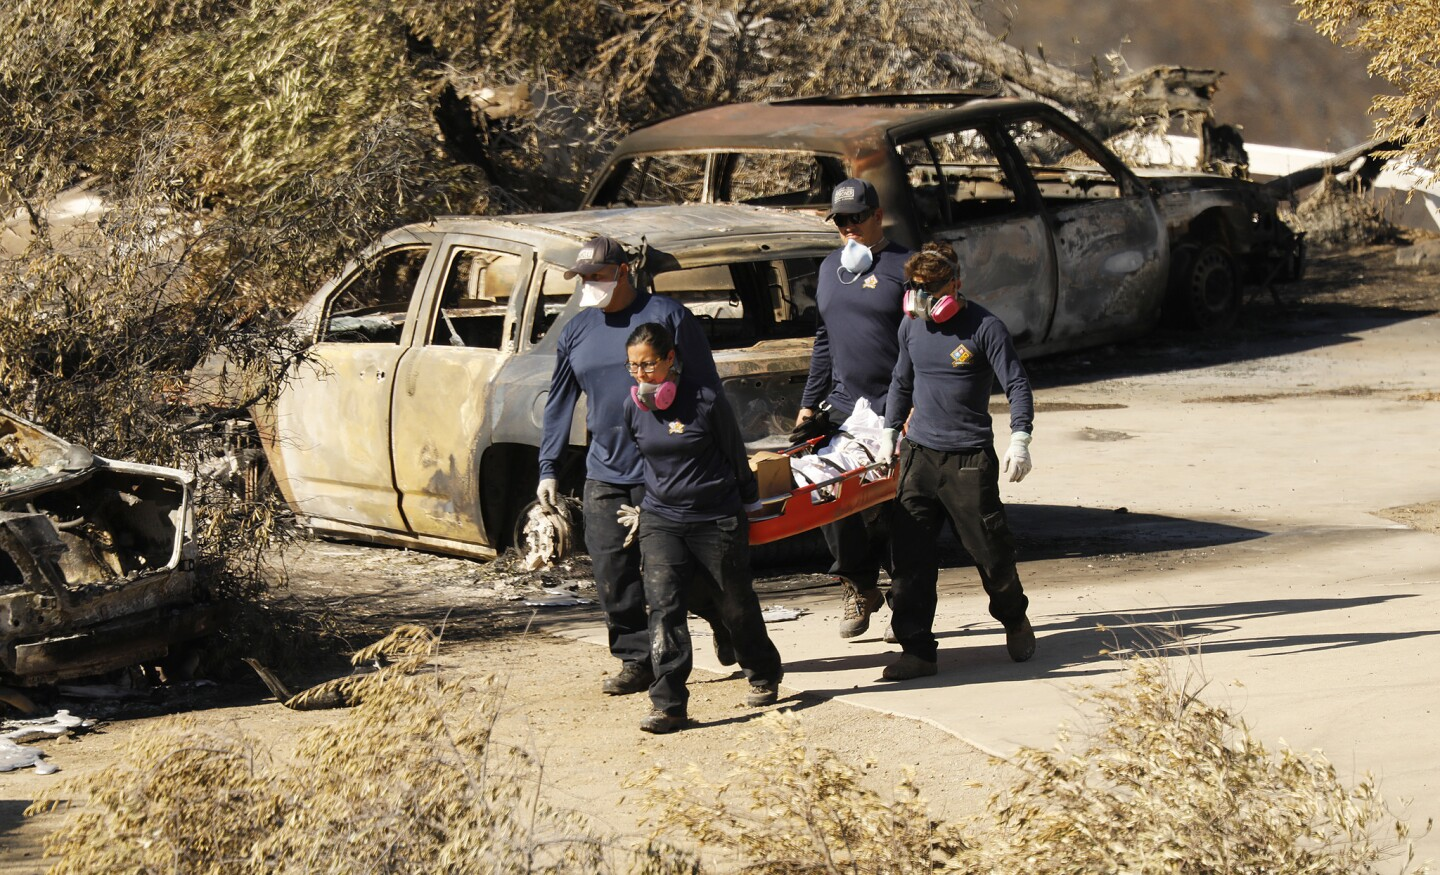 Los Angeles County coroner's workers recover a body at a burned home in the 32000 block of Lobo Canyon Road in Agoura Hills on Wednesday.